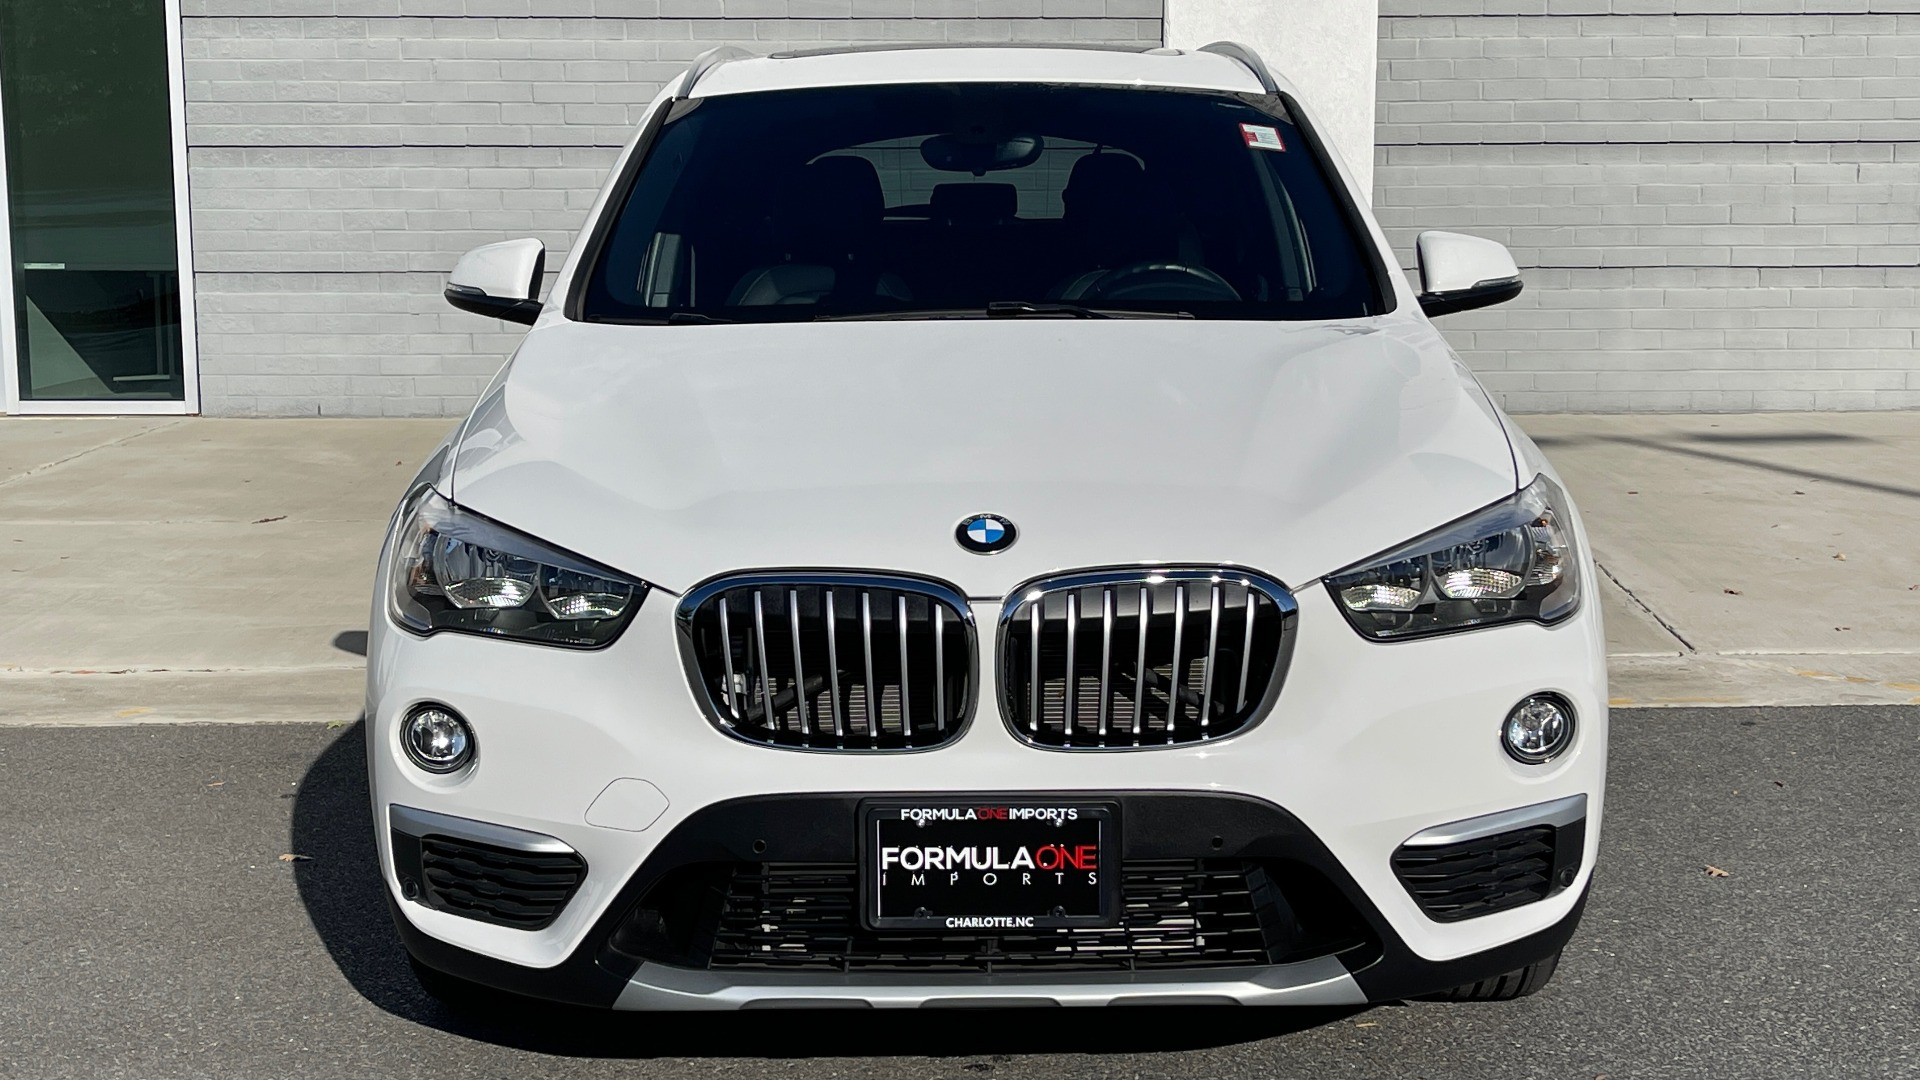 Used 2018 BMW X1 XDRIVE28I / CONV PKG / PANO-ROOF / PARK ASST / REARVIEW for sale $31,995 at Formula Imports in Charlotte NC 28227 11